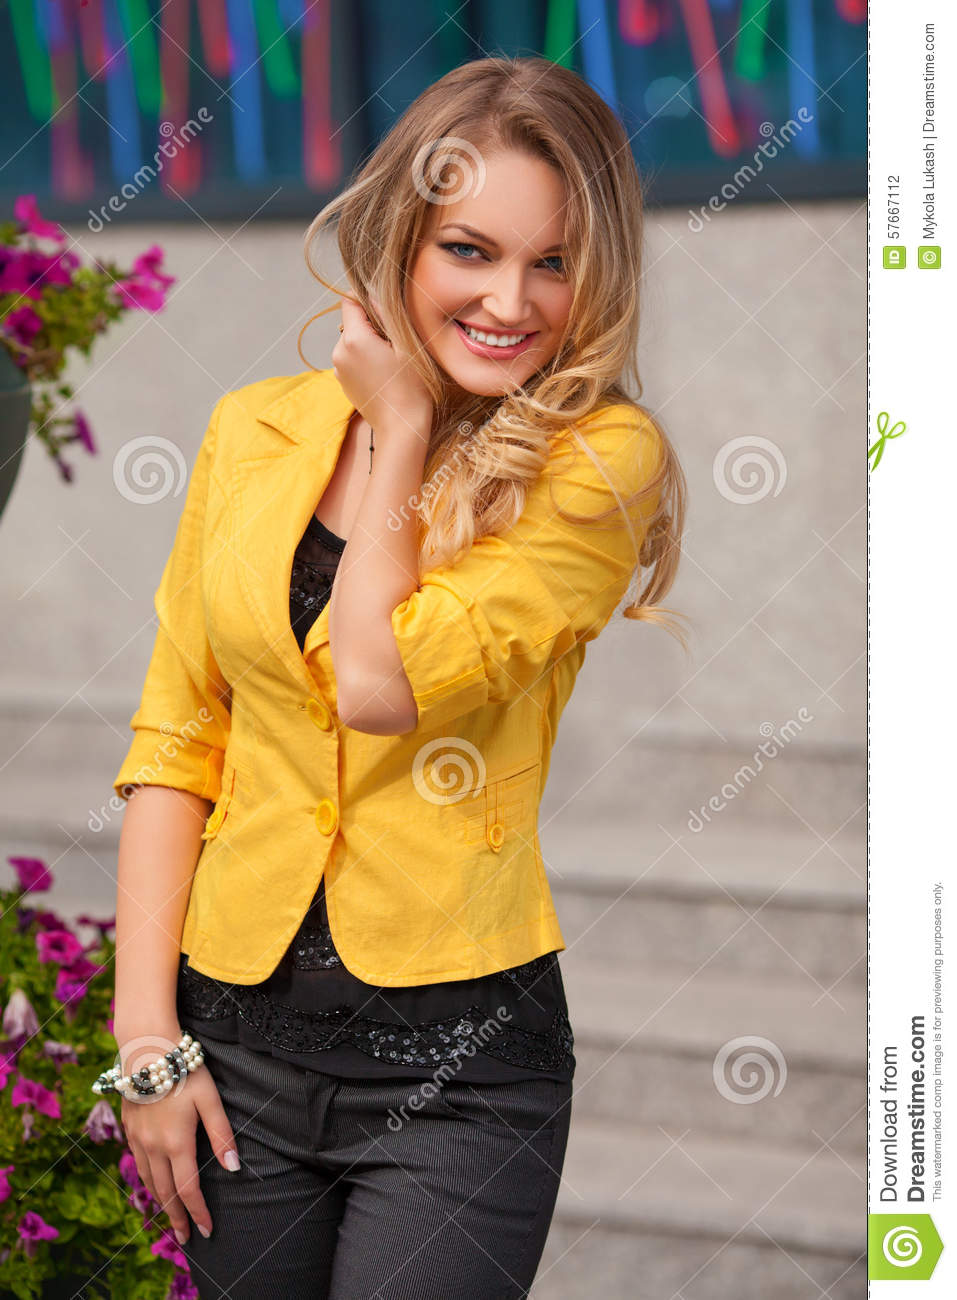 Beautiful Smiling Woman With Yellow Jacket And Blond Hair Posing Outdoor Fashion Girl Stock